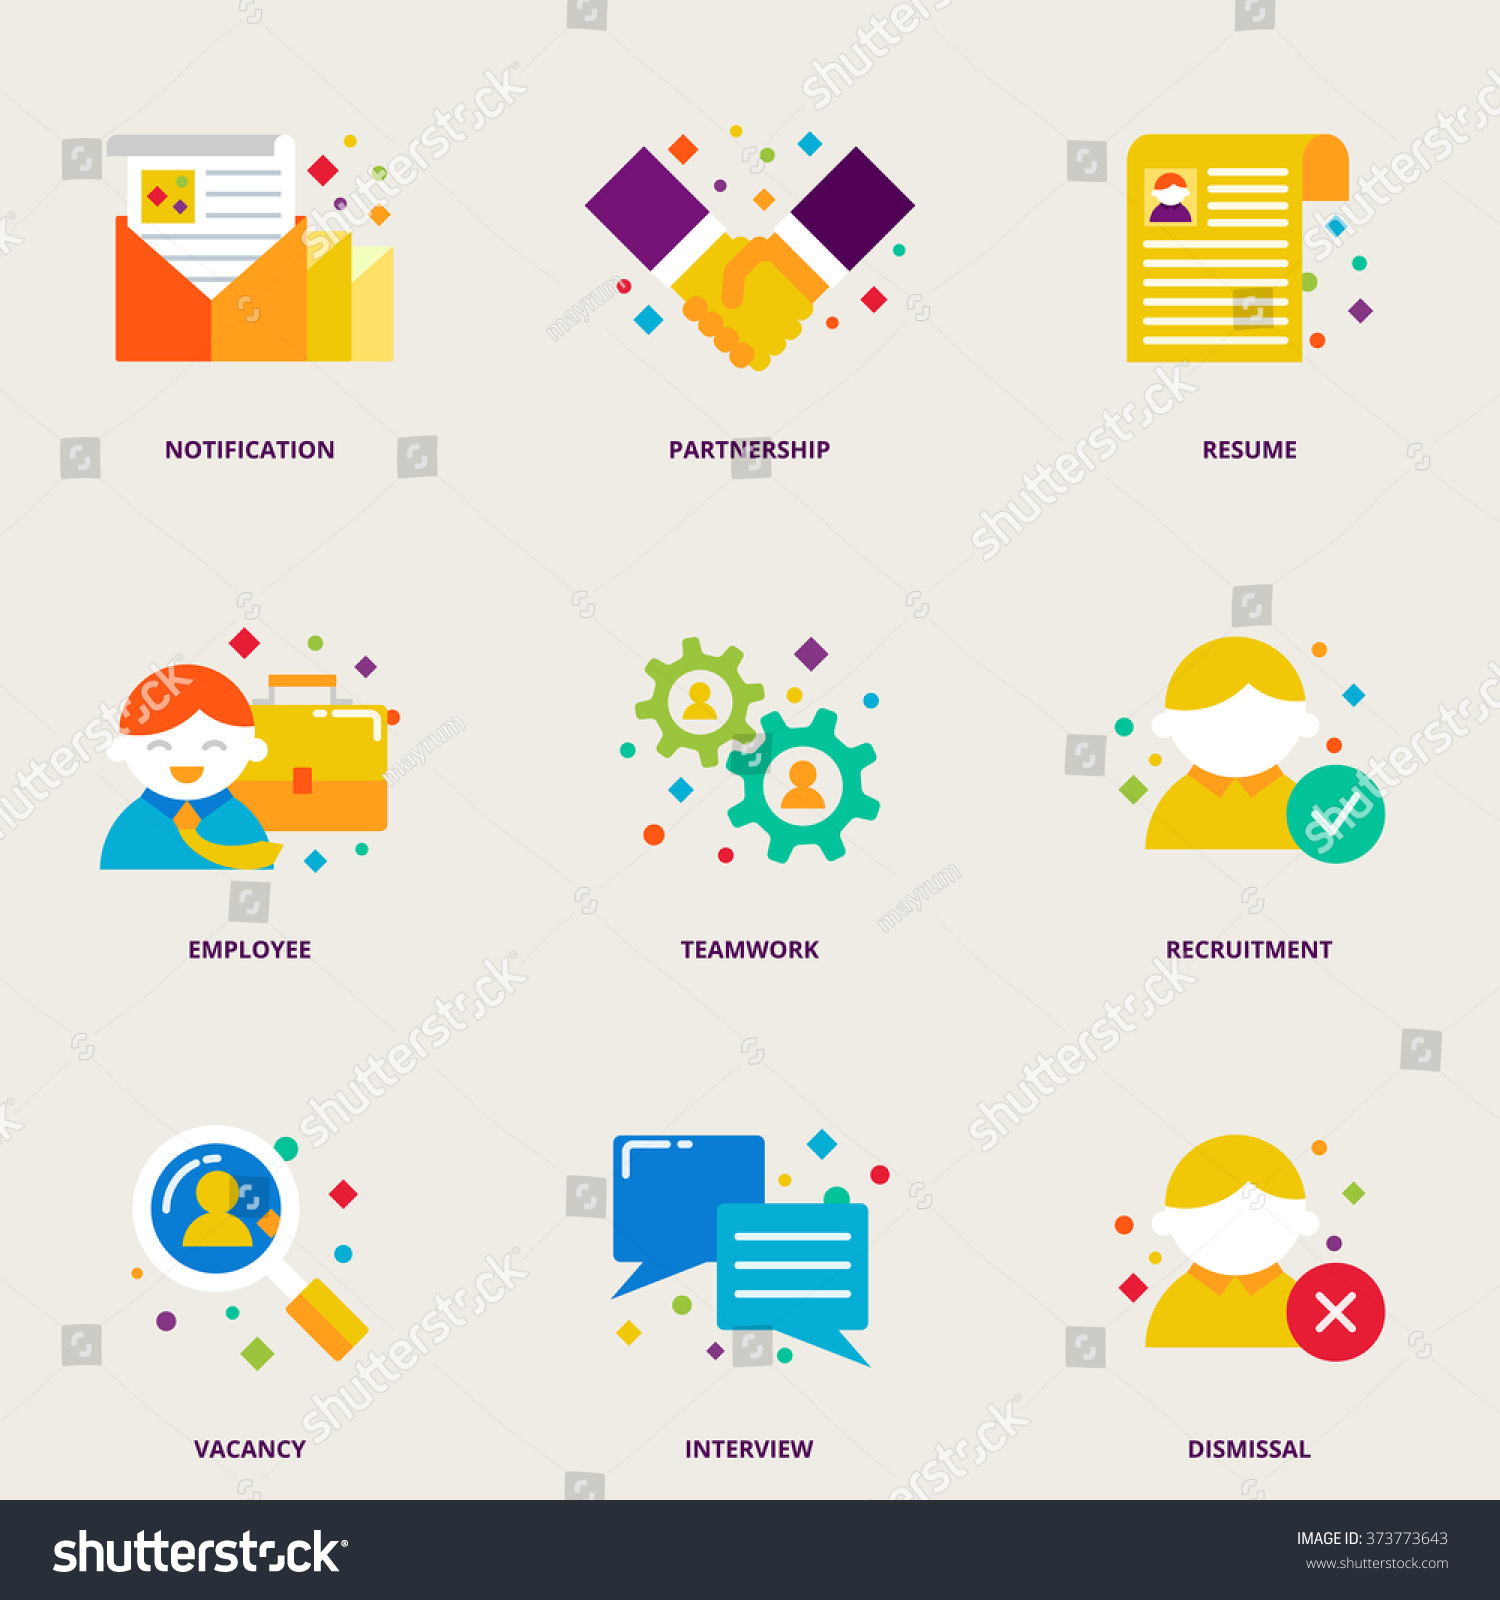 human resources and partnership colorful vector icons set resume human resources and partnership colorful vector icons set resume employee teamwork recruitment